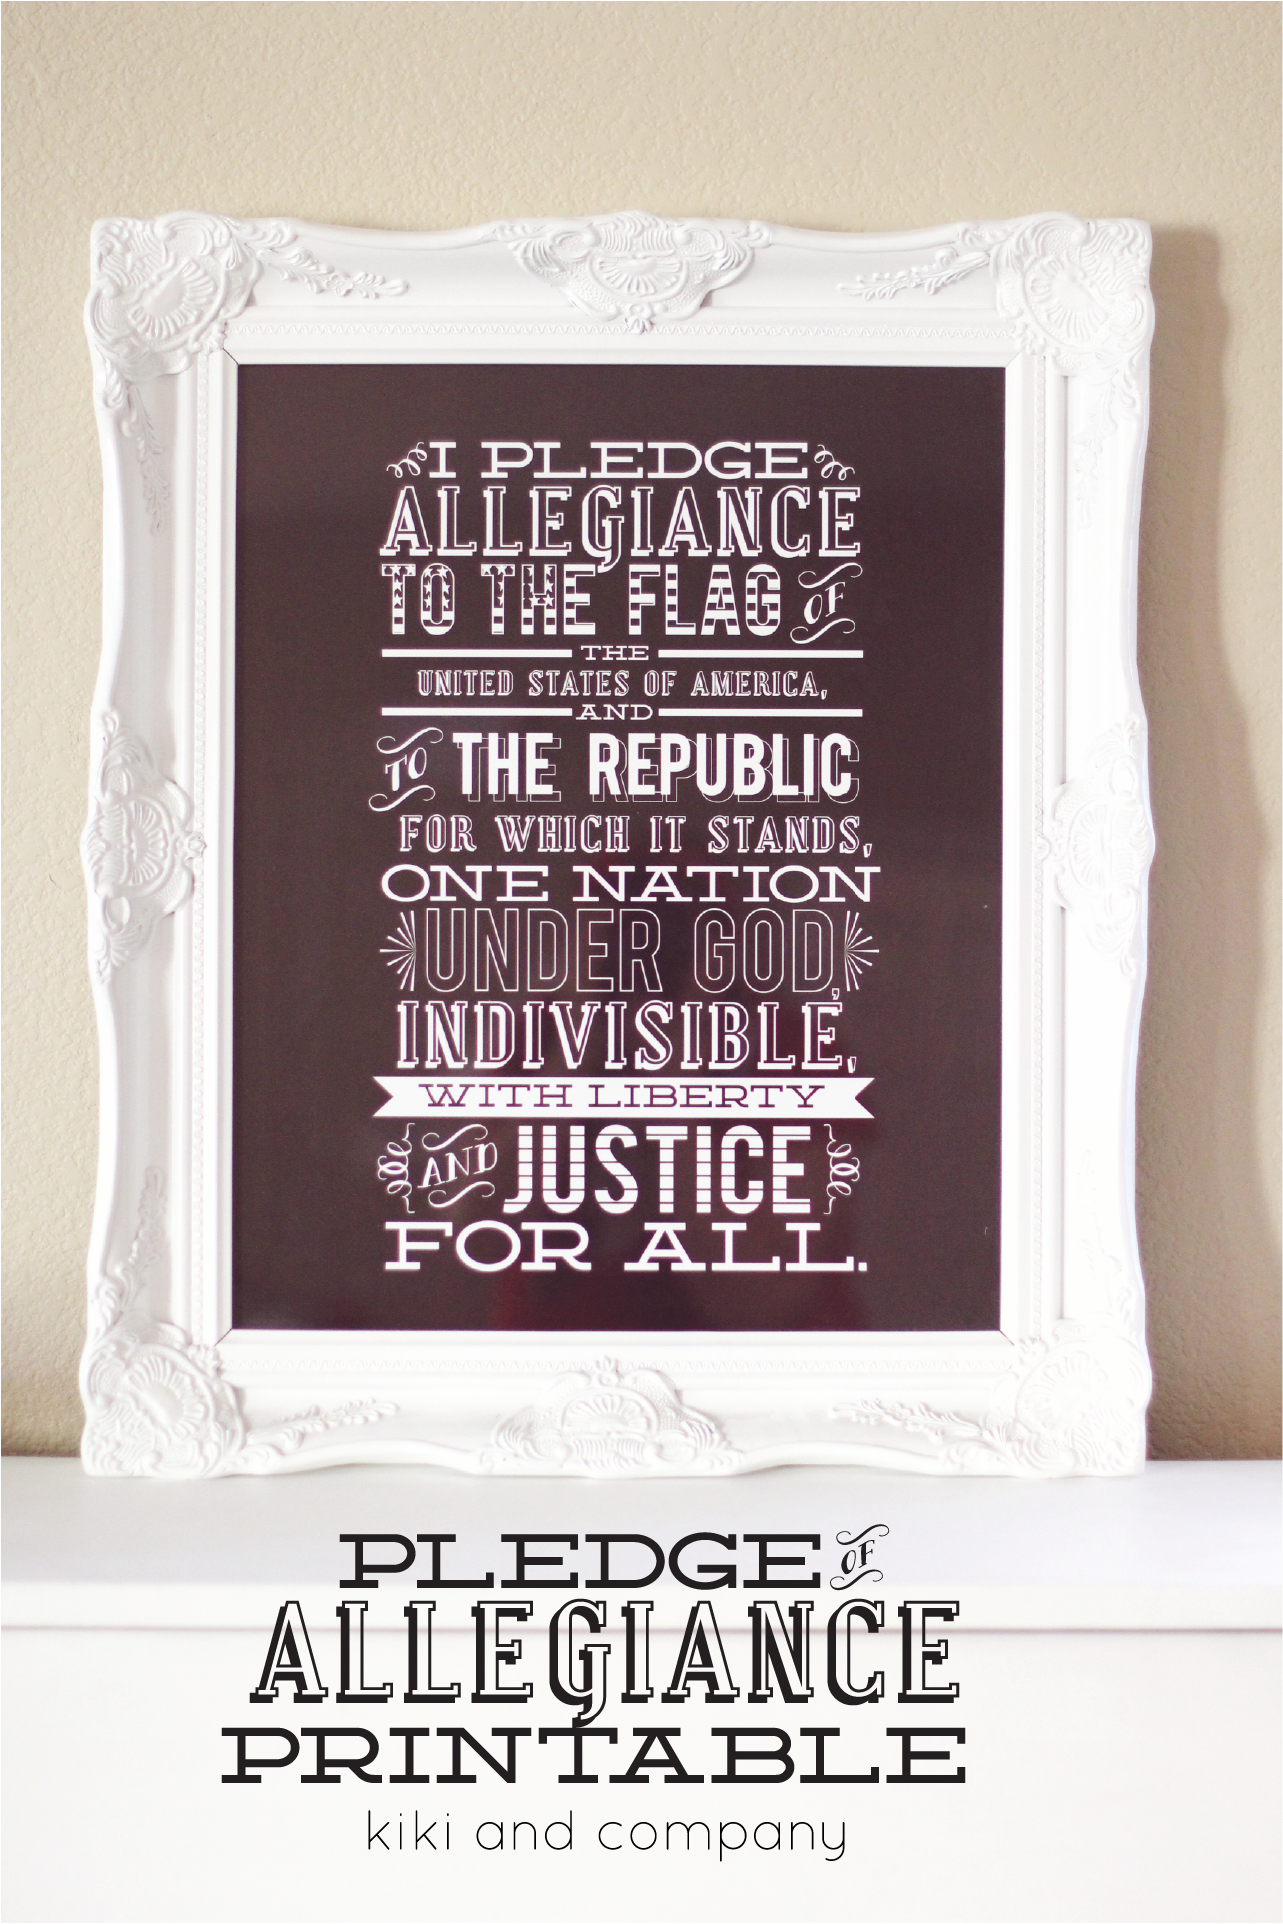 image about Pledge of Allegiance Printable identified as The Pledge of Allegiance contemporary printable + giveaway - Kiki